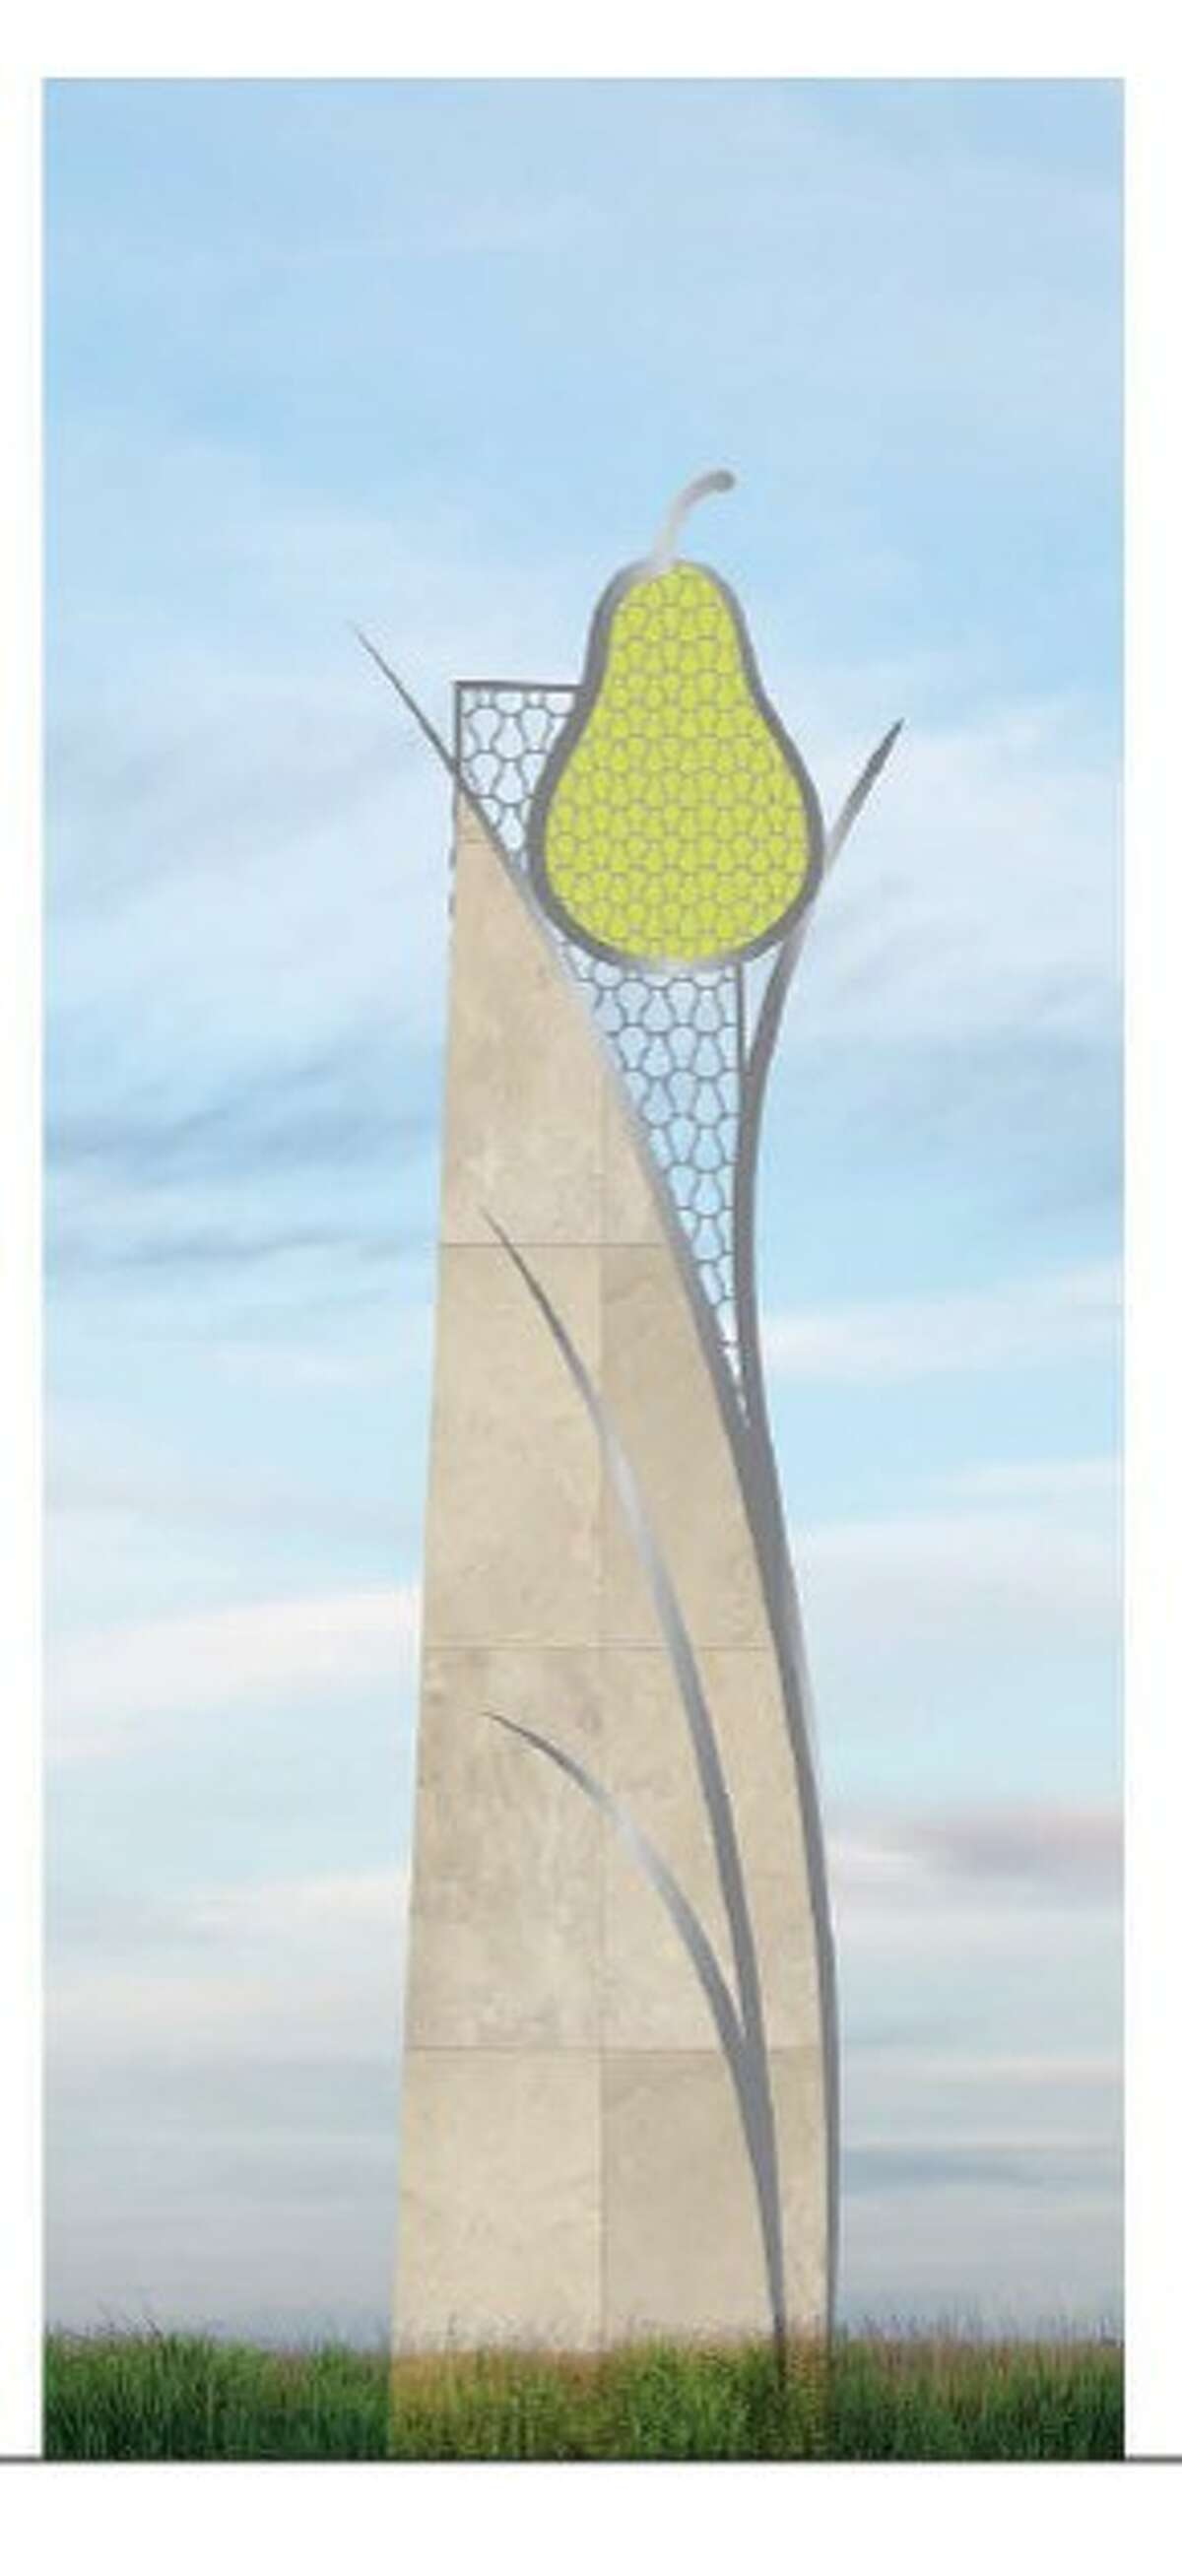 The Pearland Economic Development Corp. will erect eight large marker signs, complete with a pear logo, on either side of the Texas 288 within the city.